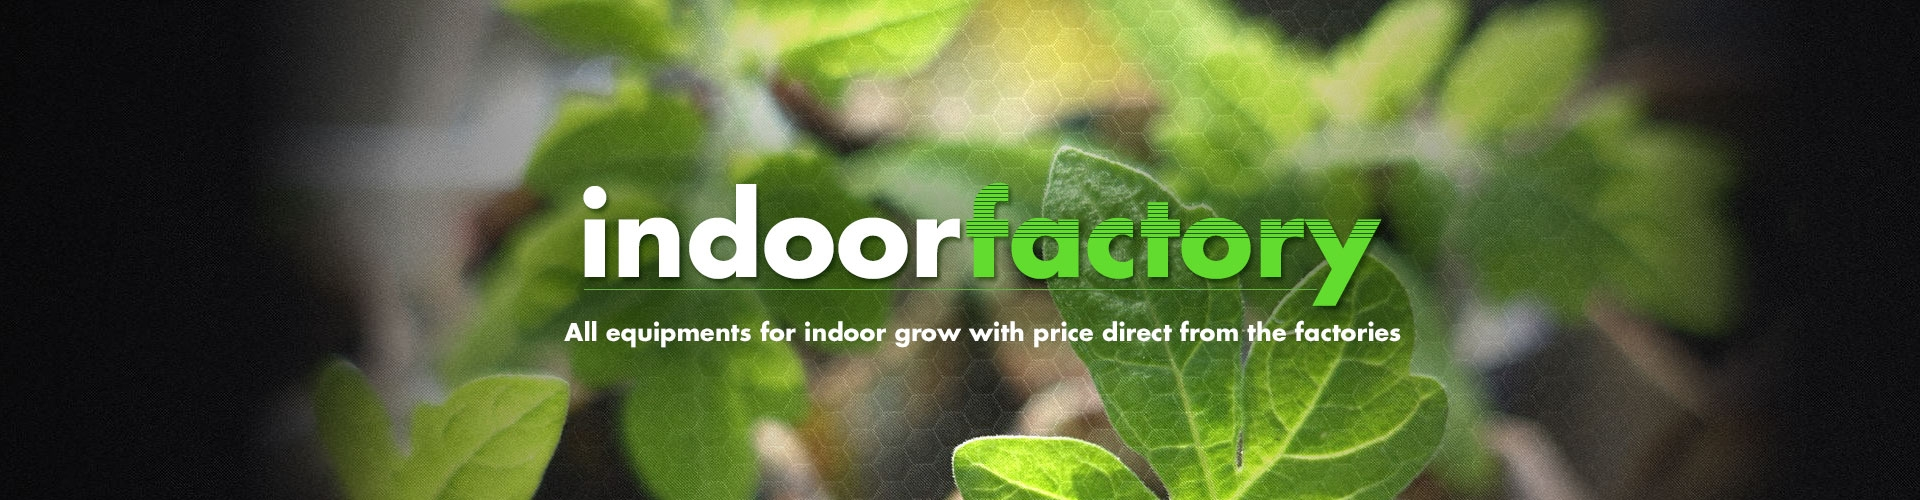 IndoorFactory